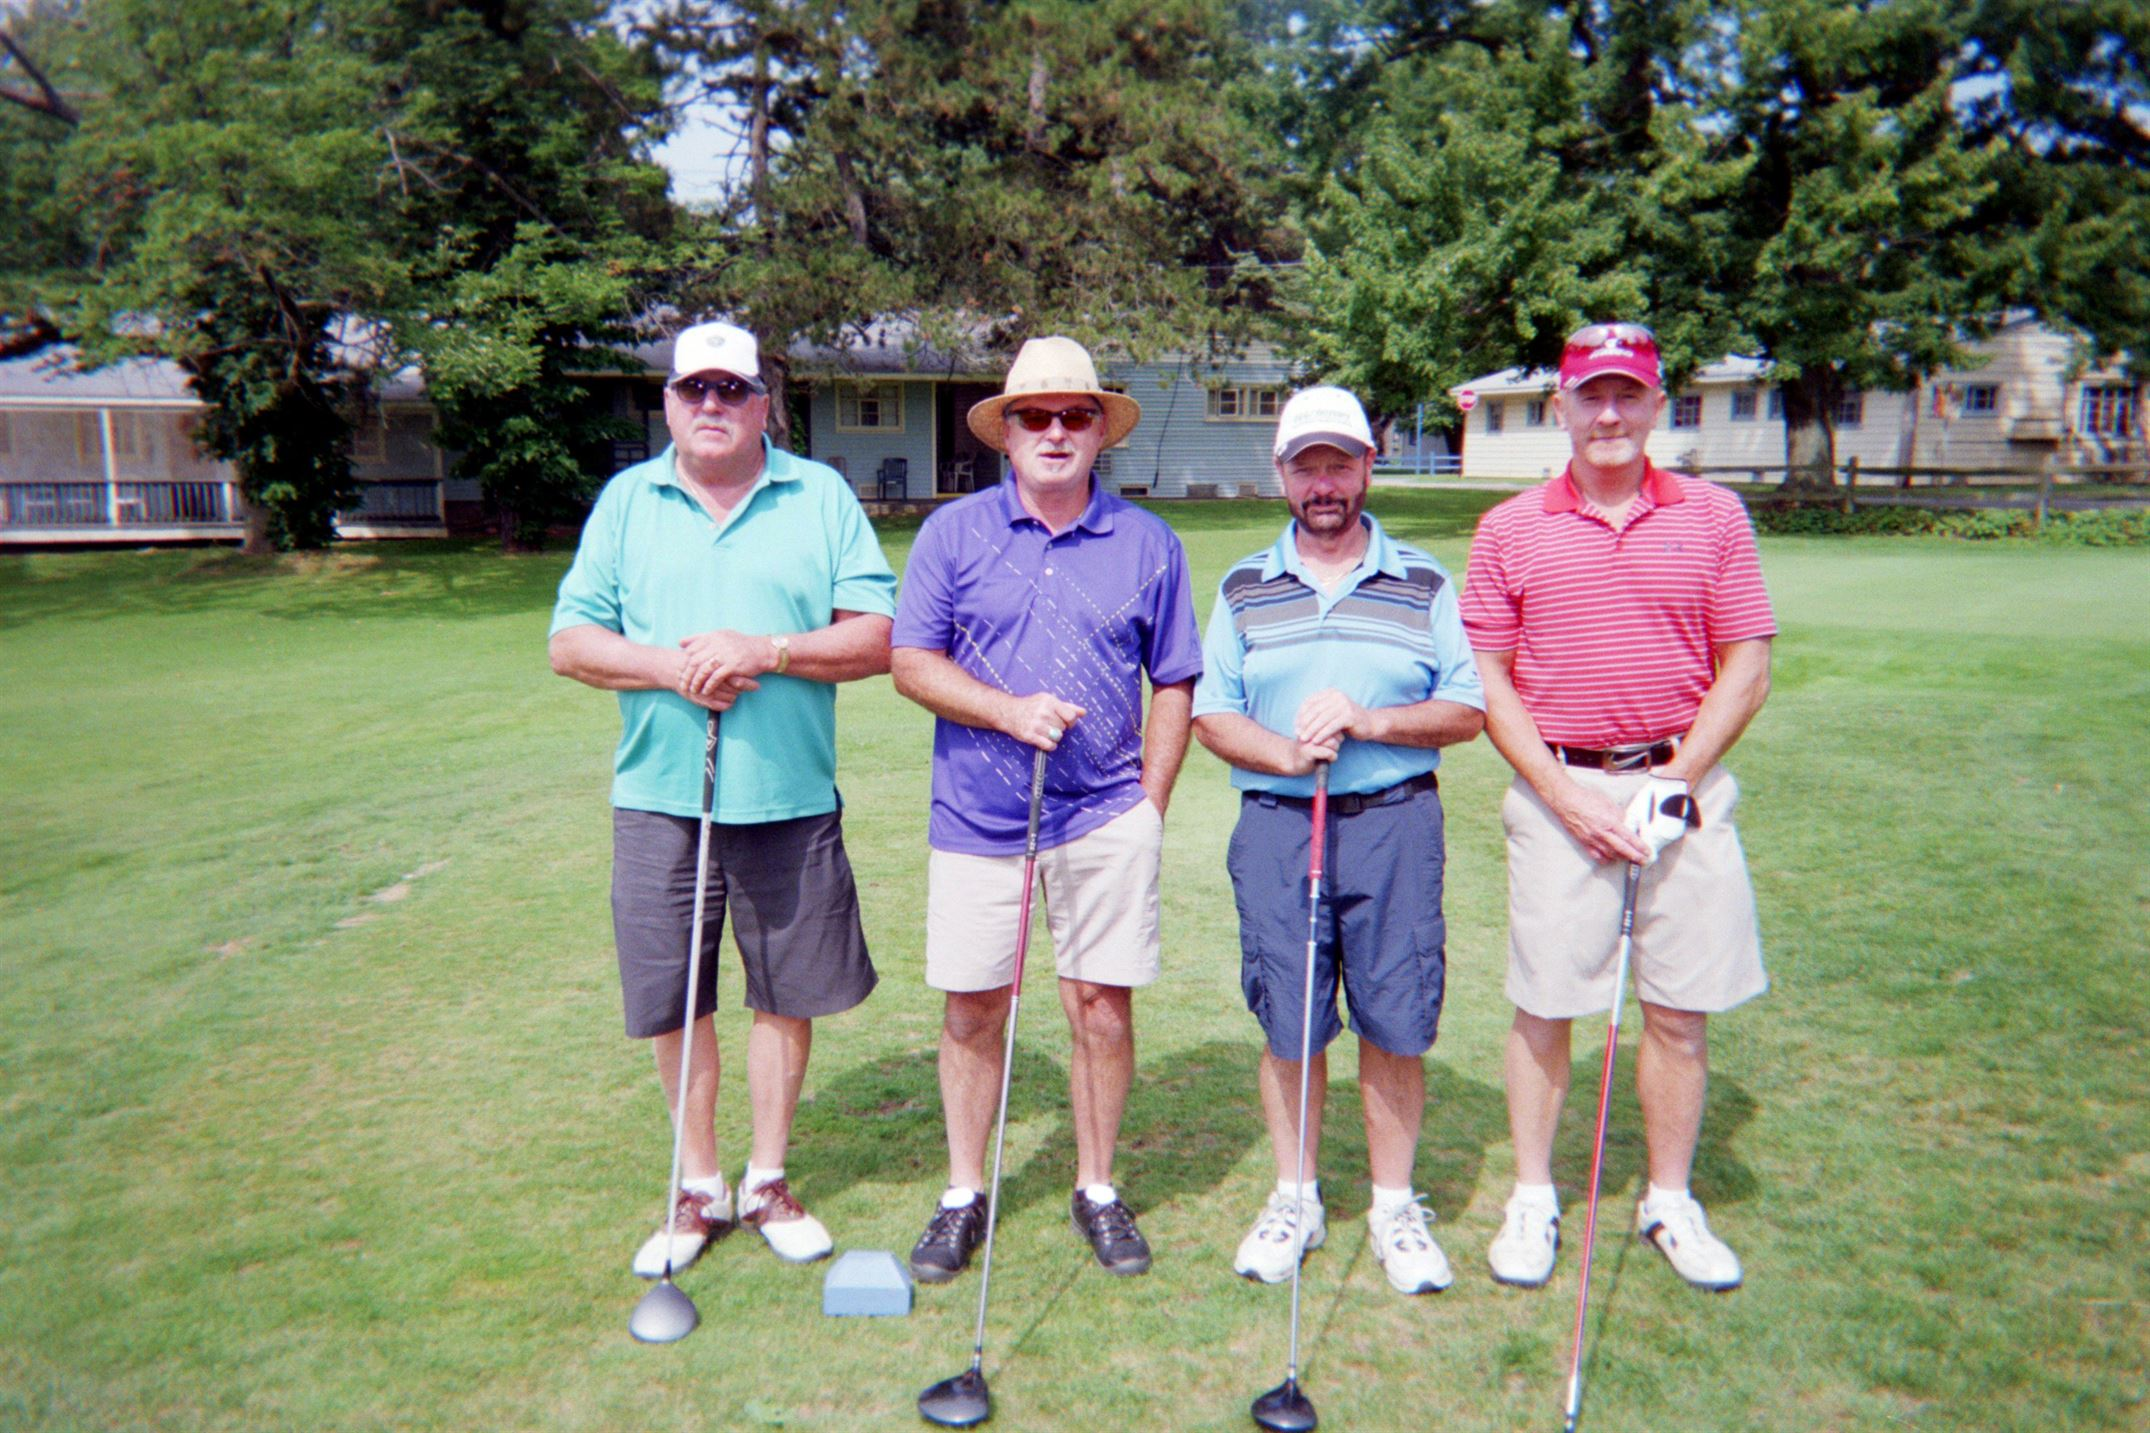 Larry Cumpston, Jim Deering, George Distler, Bob Bennett